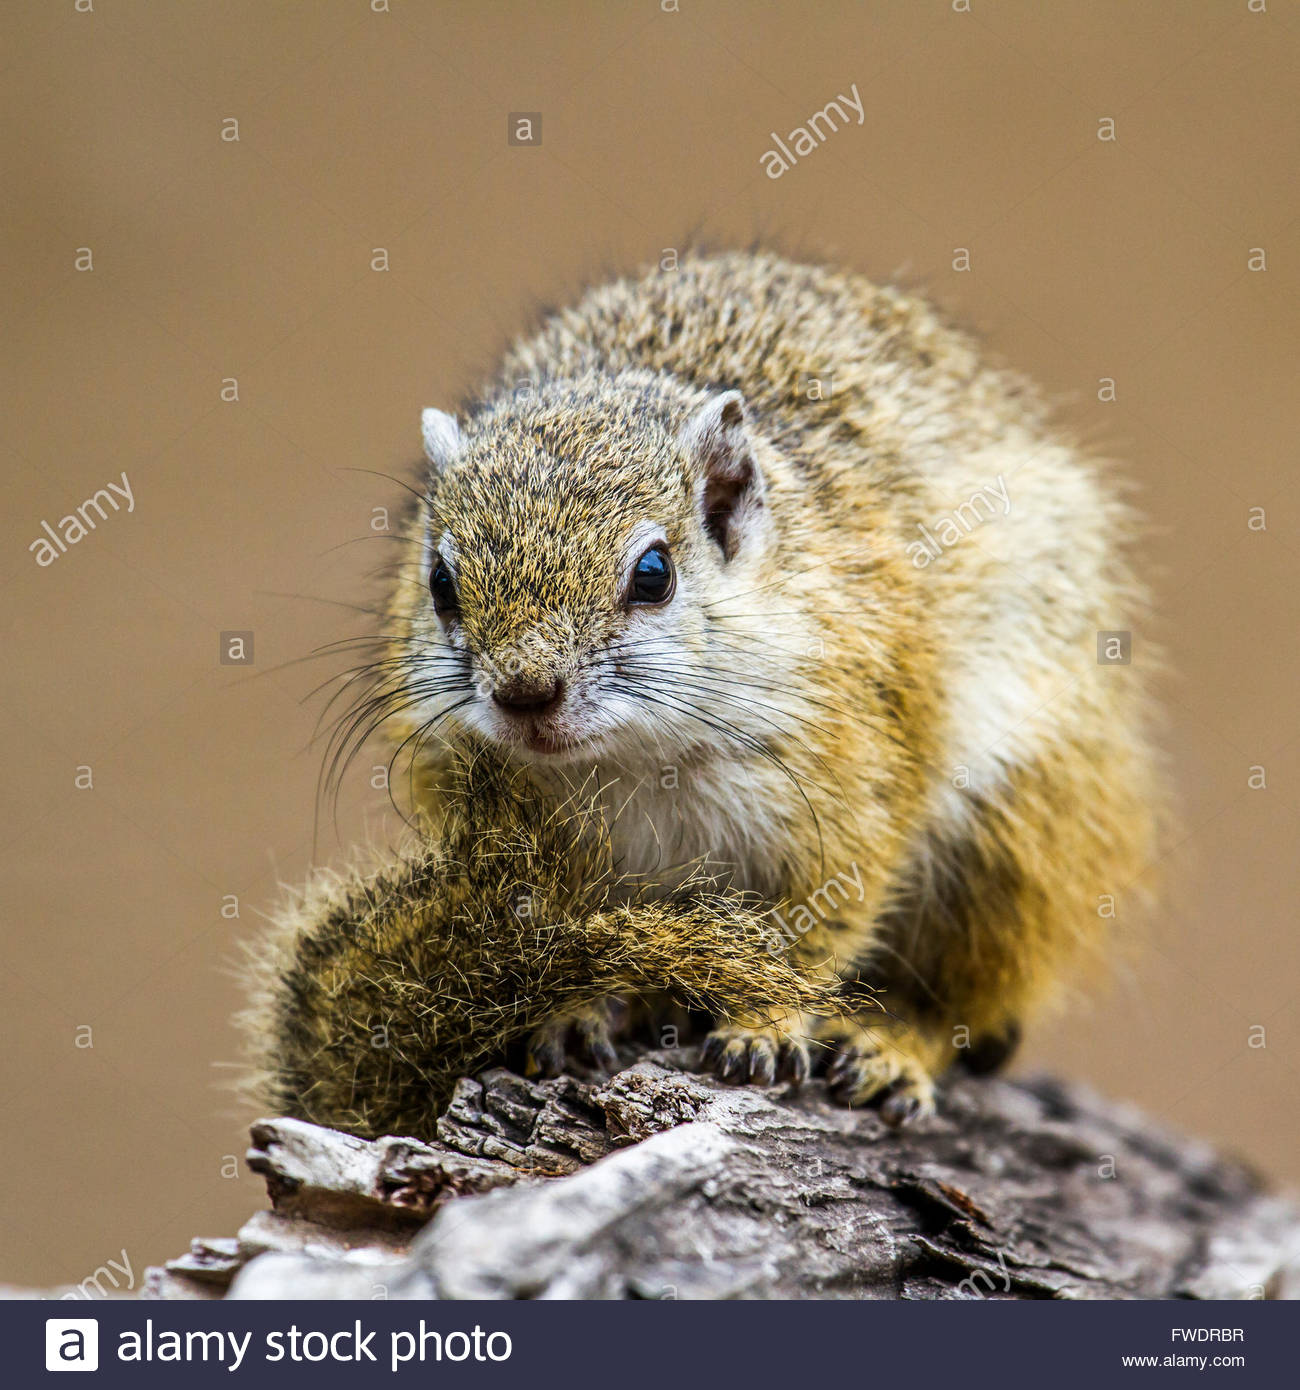 Smith's bush squirrel in Kruger national park, South Africa ; Specie Paraxerus cepapi family of Sciuridae - Stock Image